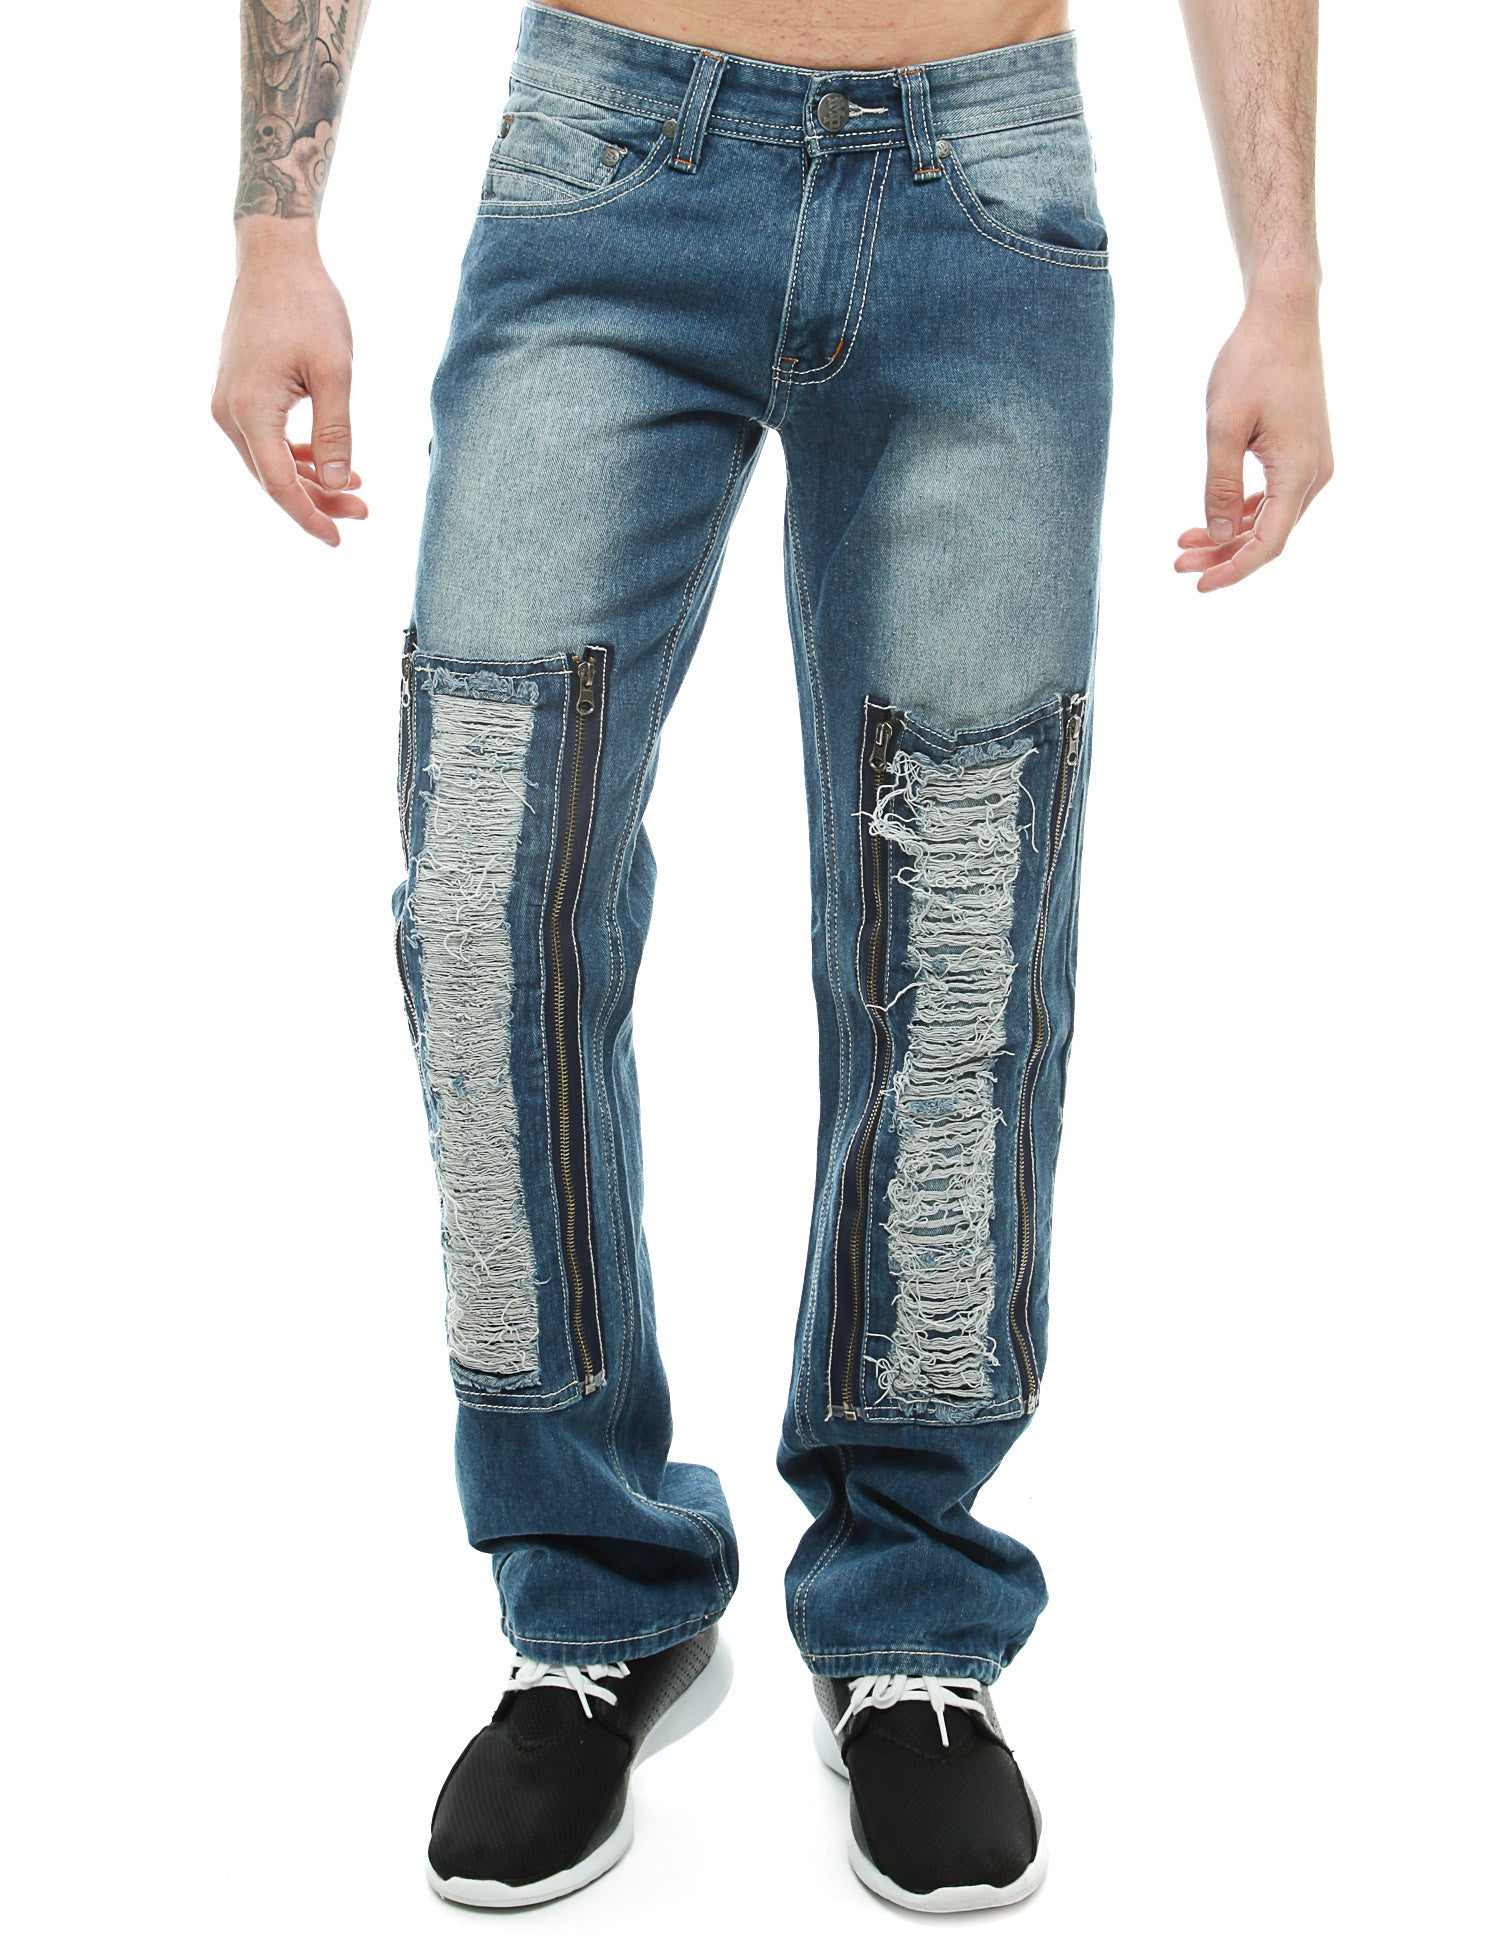 Imperious Rip W/ Zipper Patched Jeans Blue